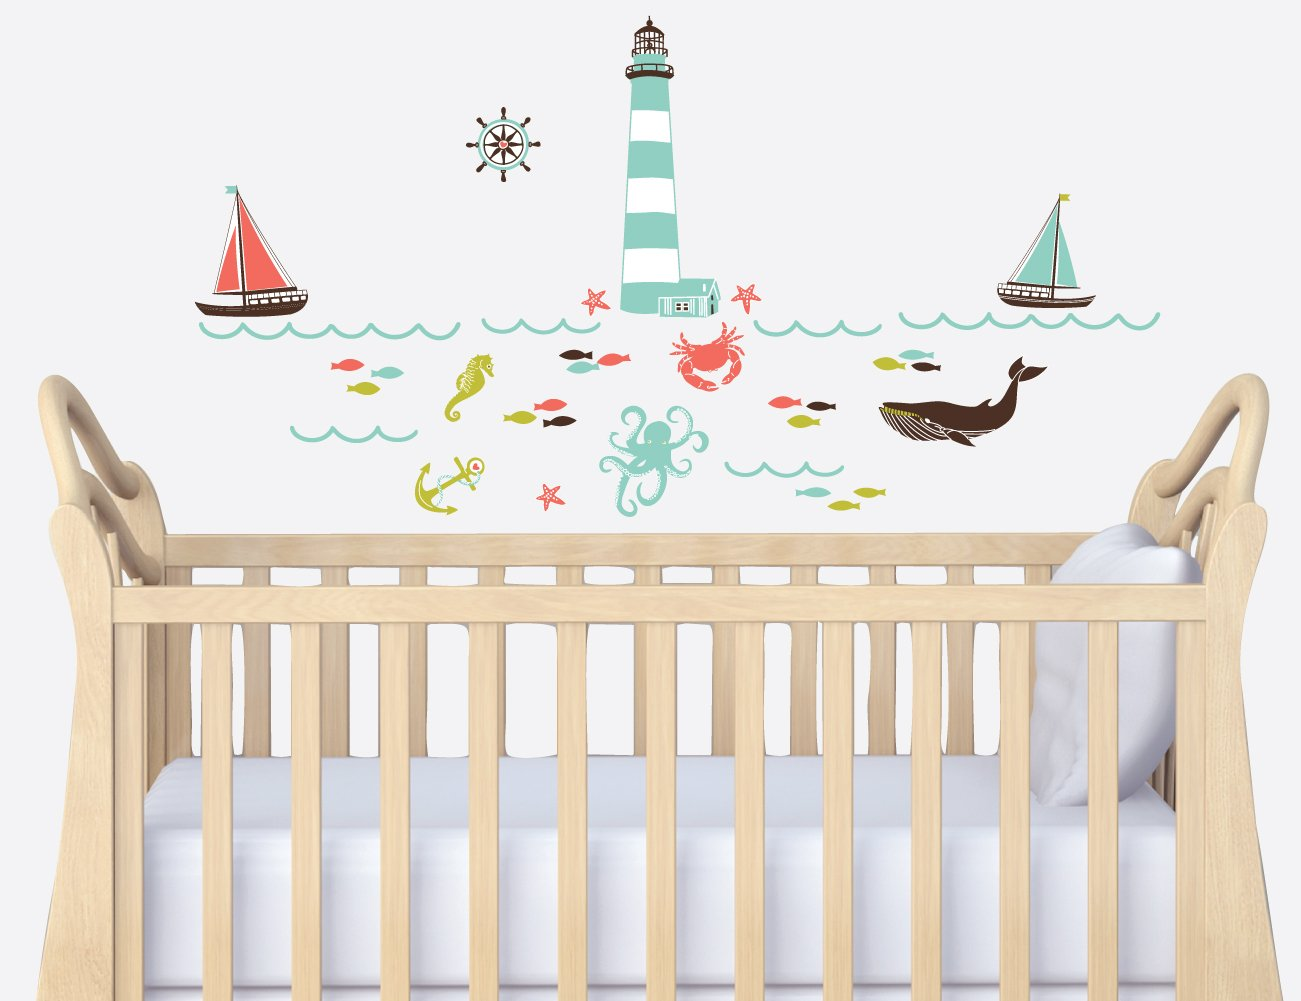 Amazon nautical wall decal in red navy and gray for nursery amazon nautical wall decal in red navy and gray for nursery baby amipublicfo Choice Image